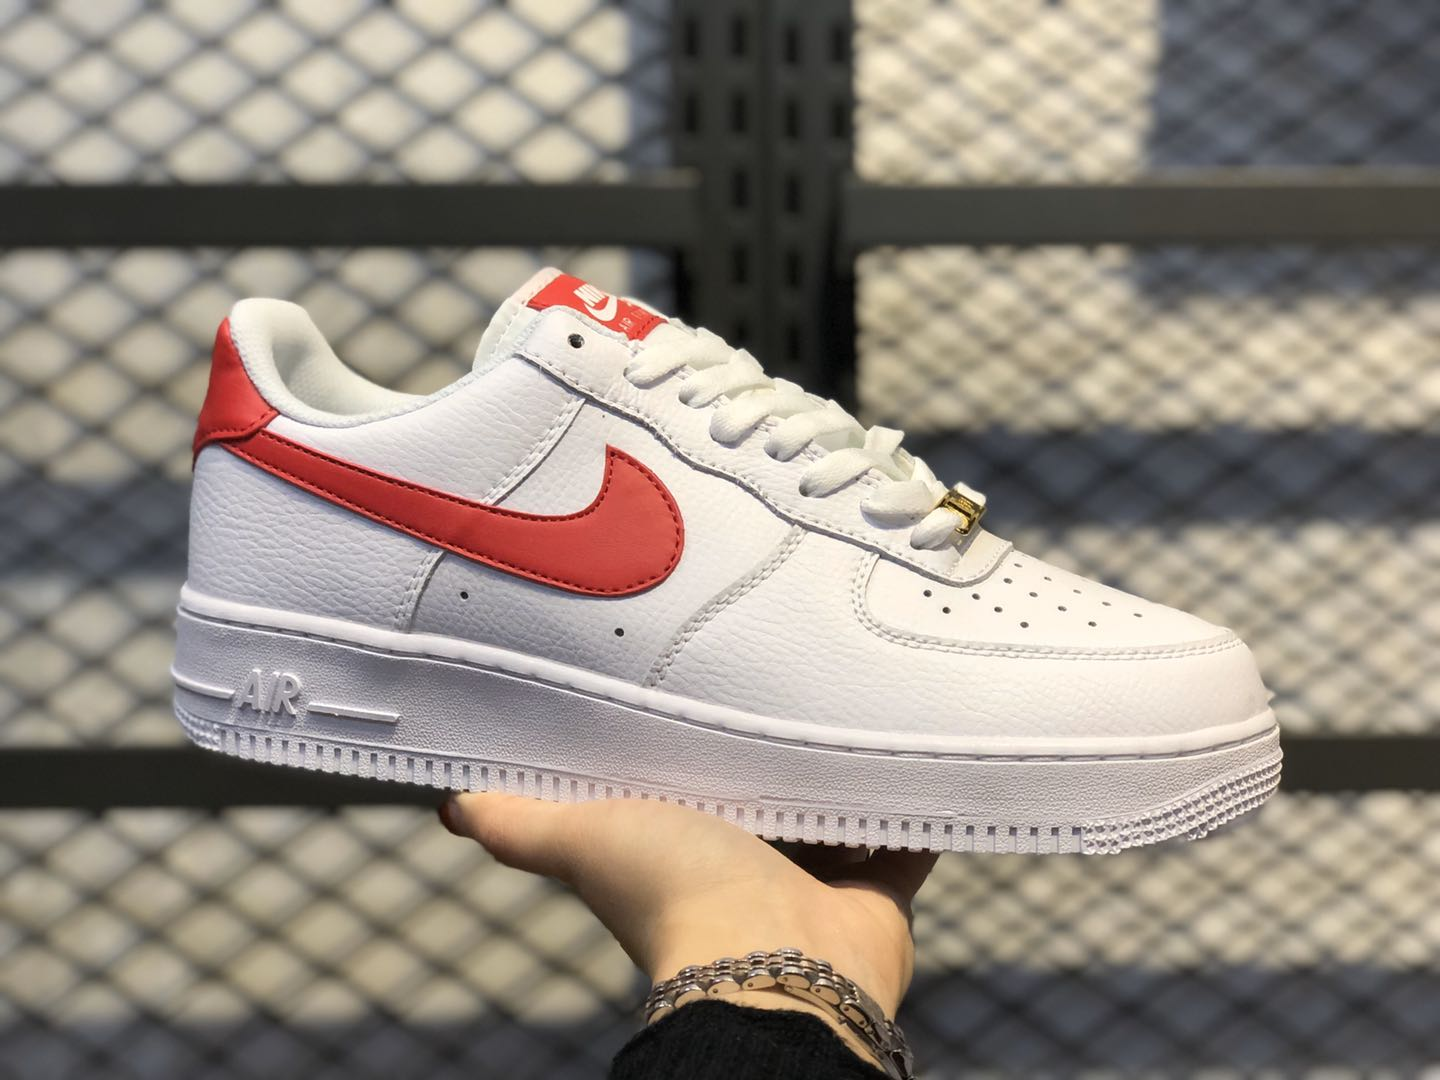 Nike Wmns Air Force 1'07 Low White/Noble Red On Sale 315115-154